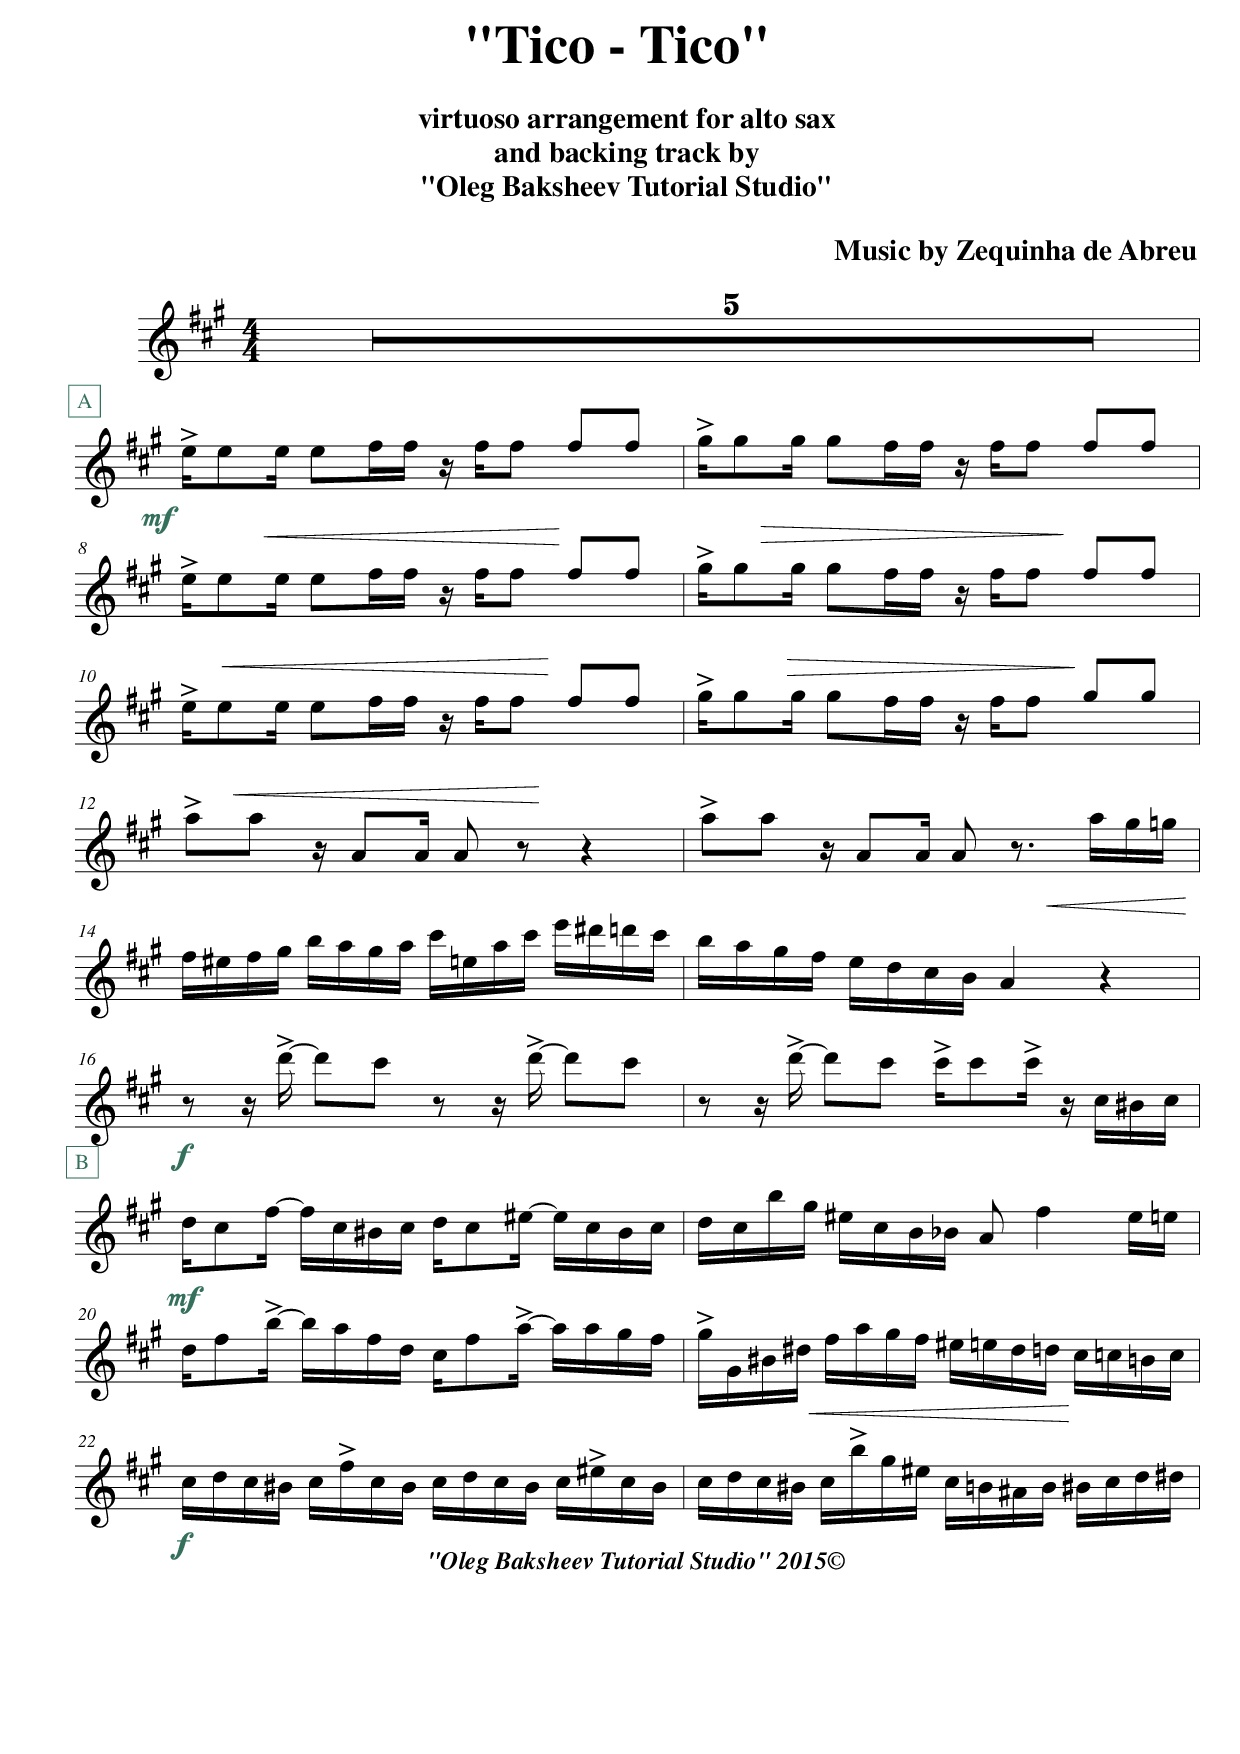 Tico Tico Alto Sax Sheet Music Backing Playalong Track